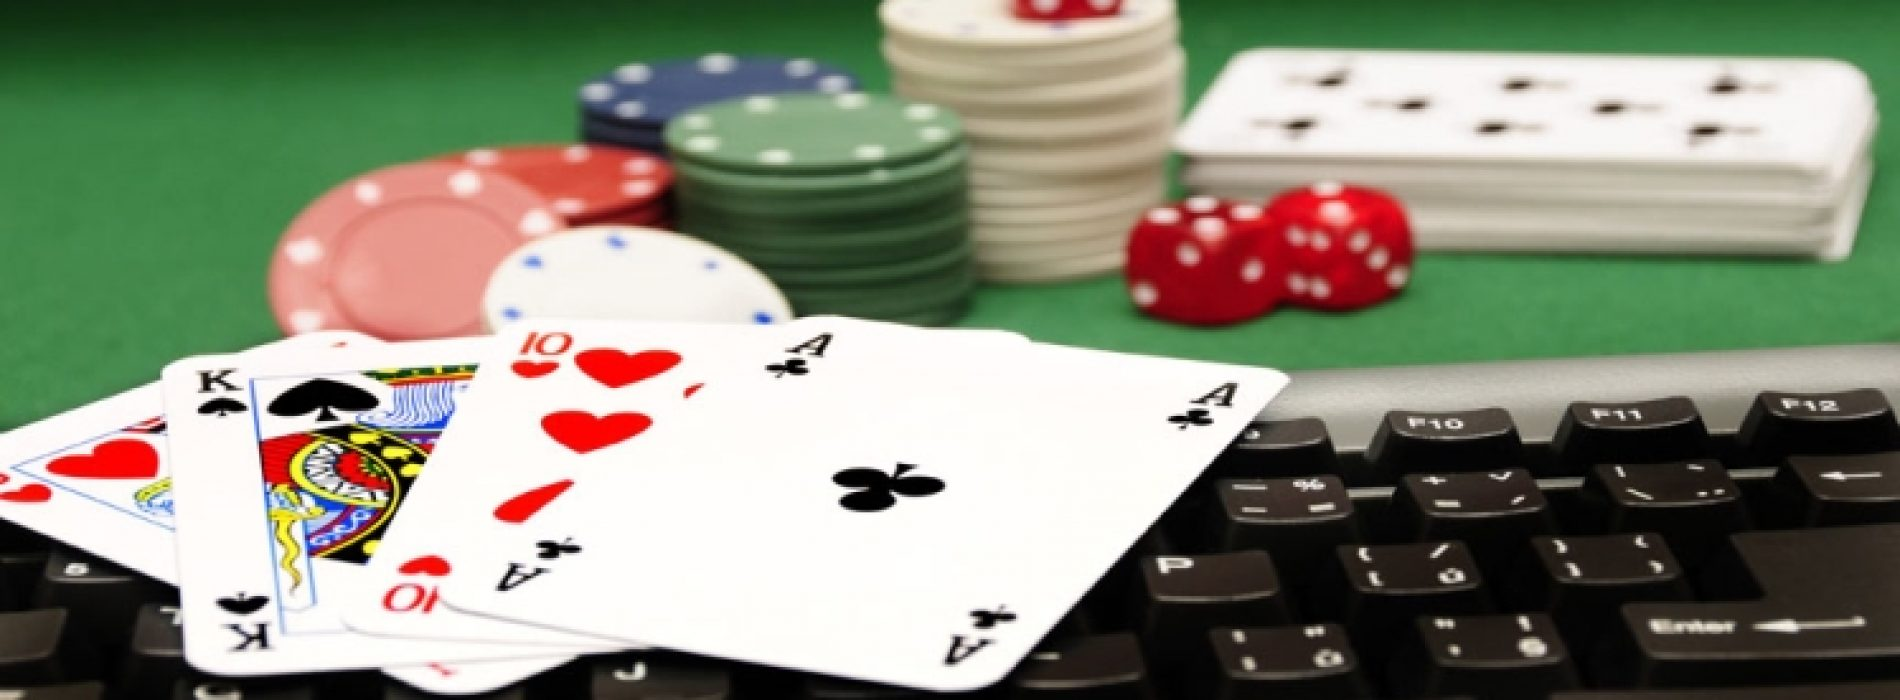 New Player In The World Of An Online Slot Game And Want To Know How To Play? – A Brief Guide For Beginner's